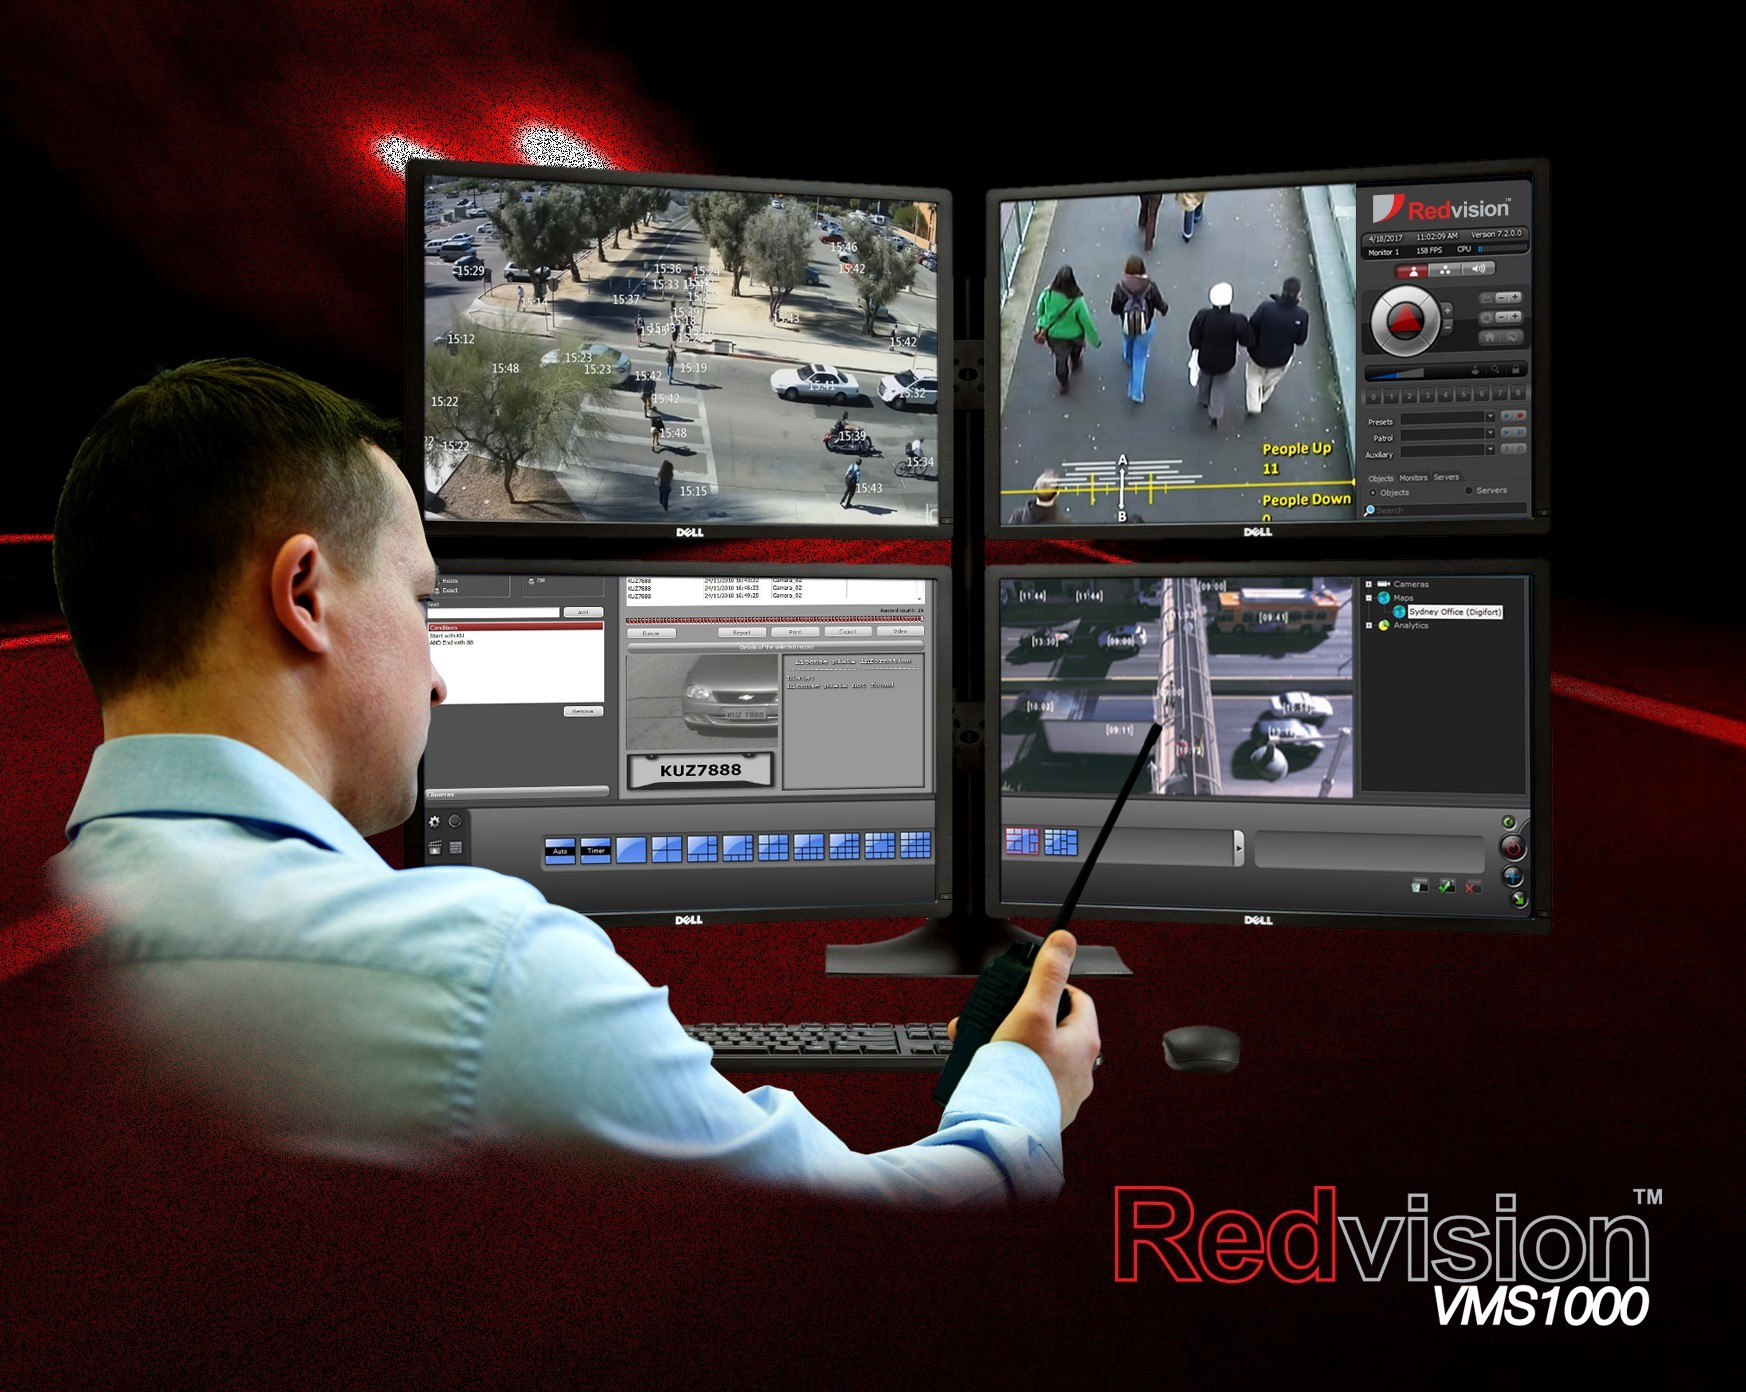 Redvision launches the VMS1000™, open-platform control system, powered by Digifort video management software.